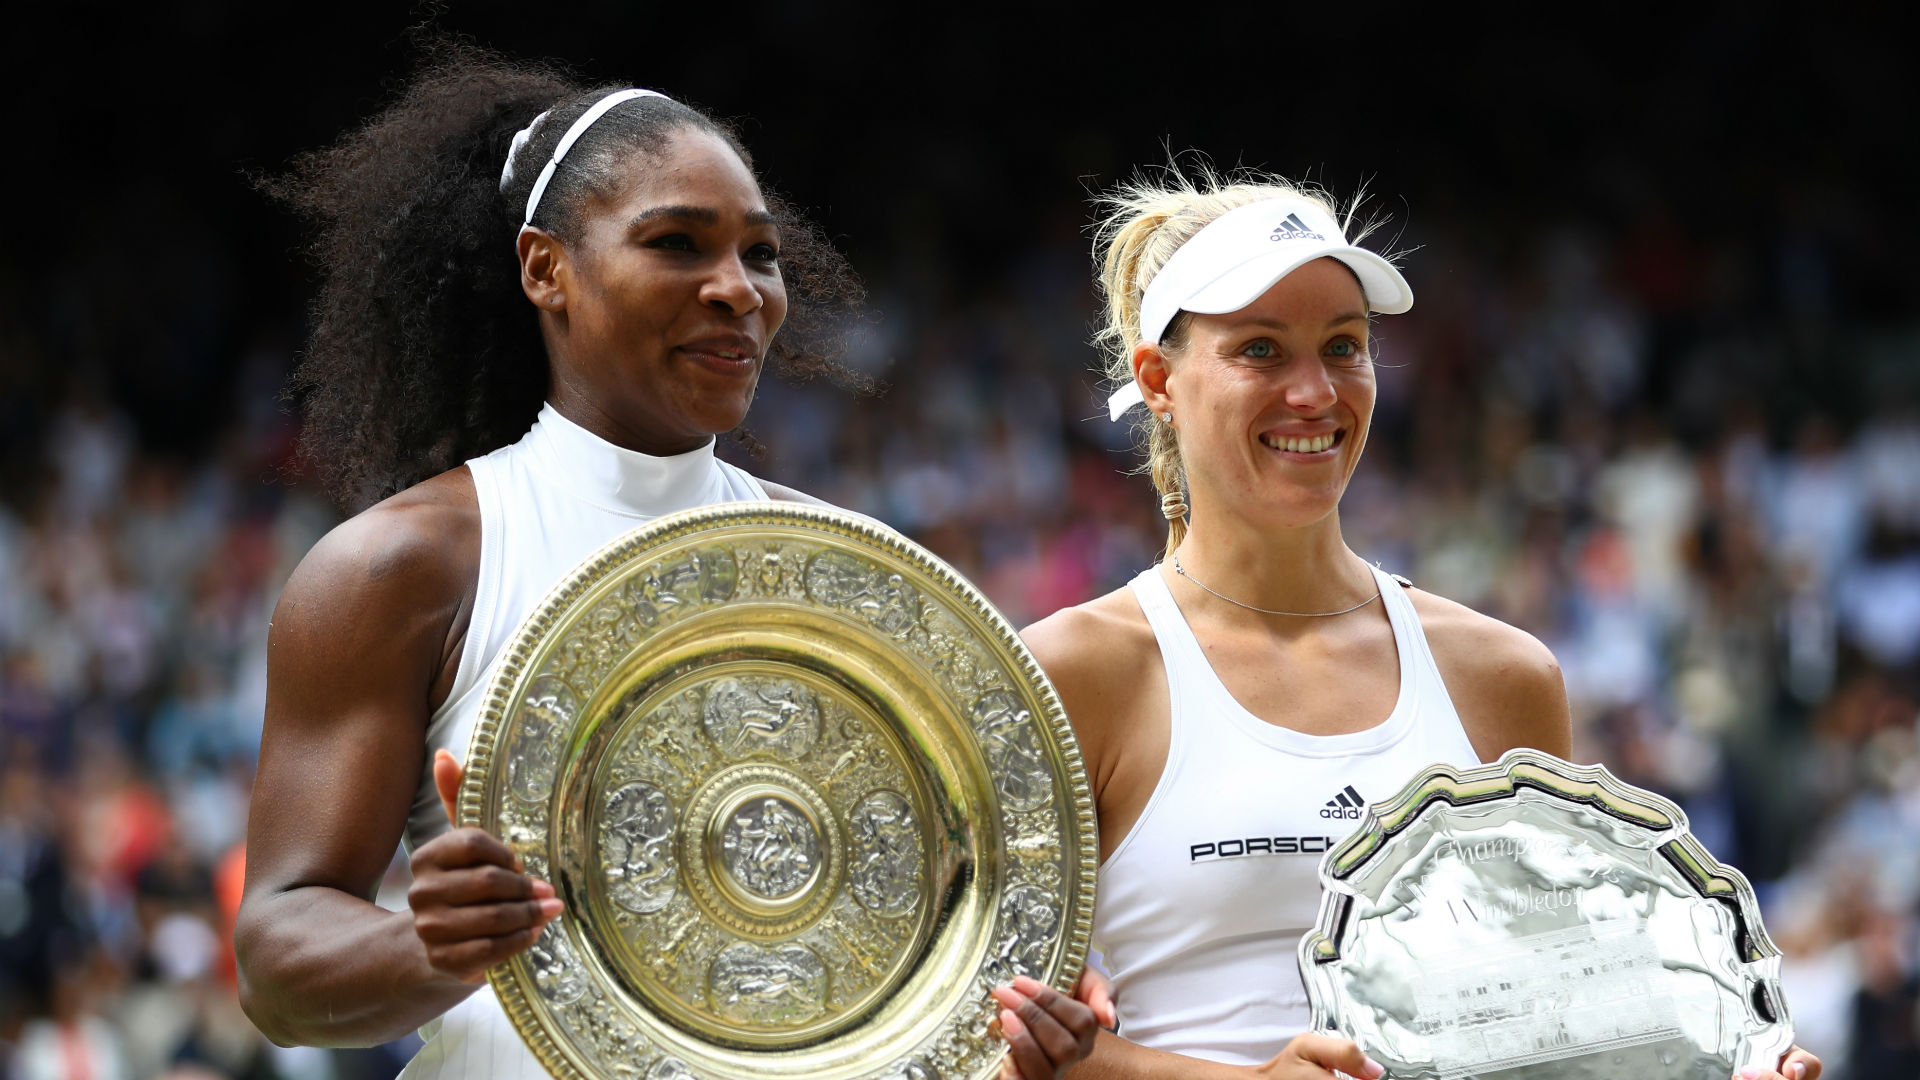 Wimbledon 2018: Serena Williams-Angelique Kerber rematch is resumption of a rivalry